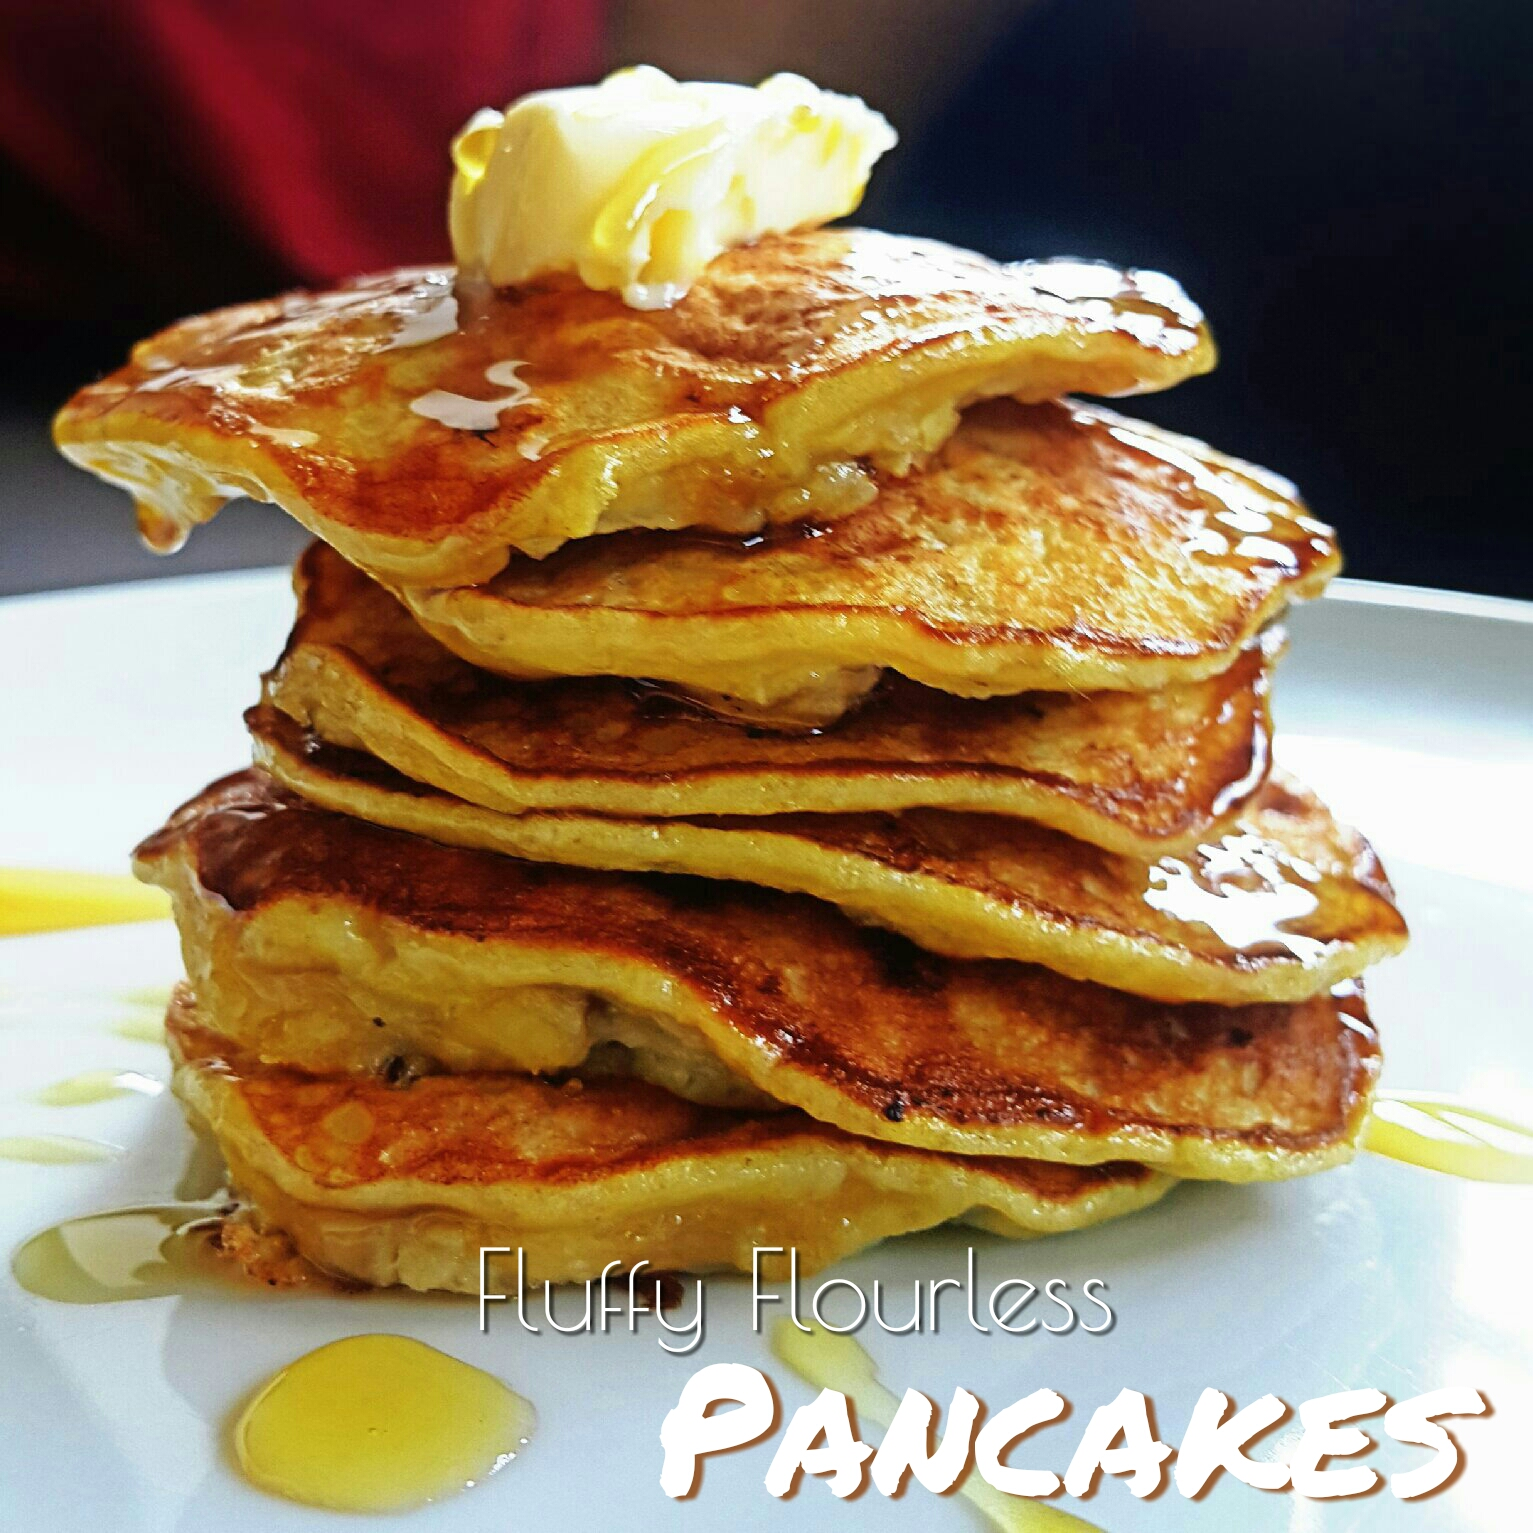 Picture of 10mins Gluten-free Breakfast: Healthy Fluffy Flour-less Pancakes